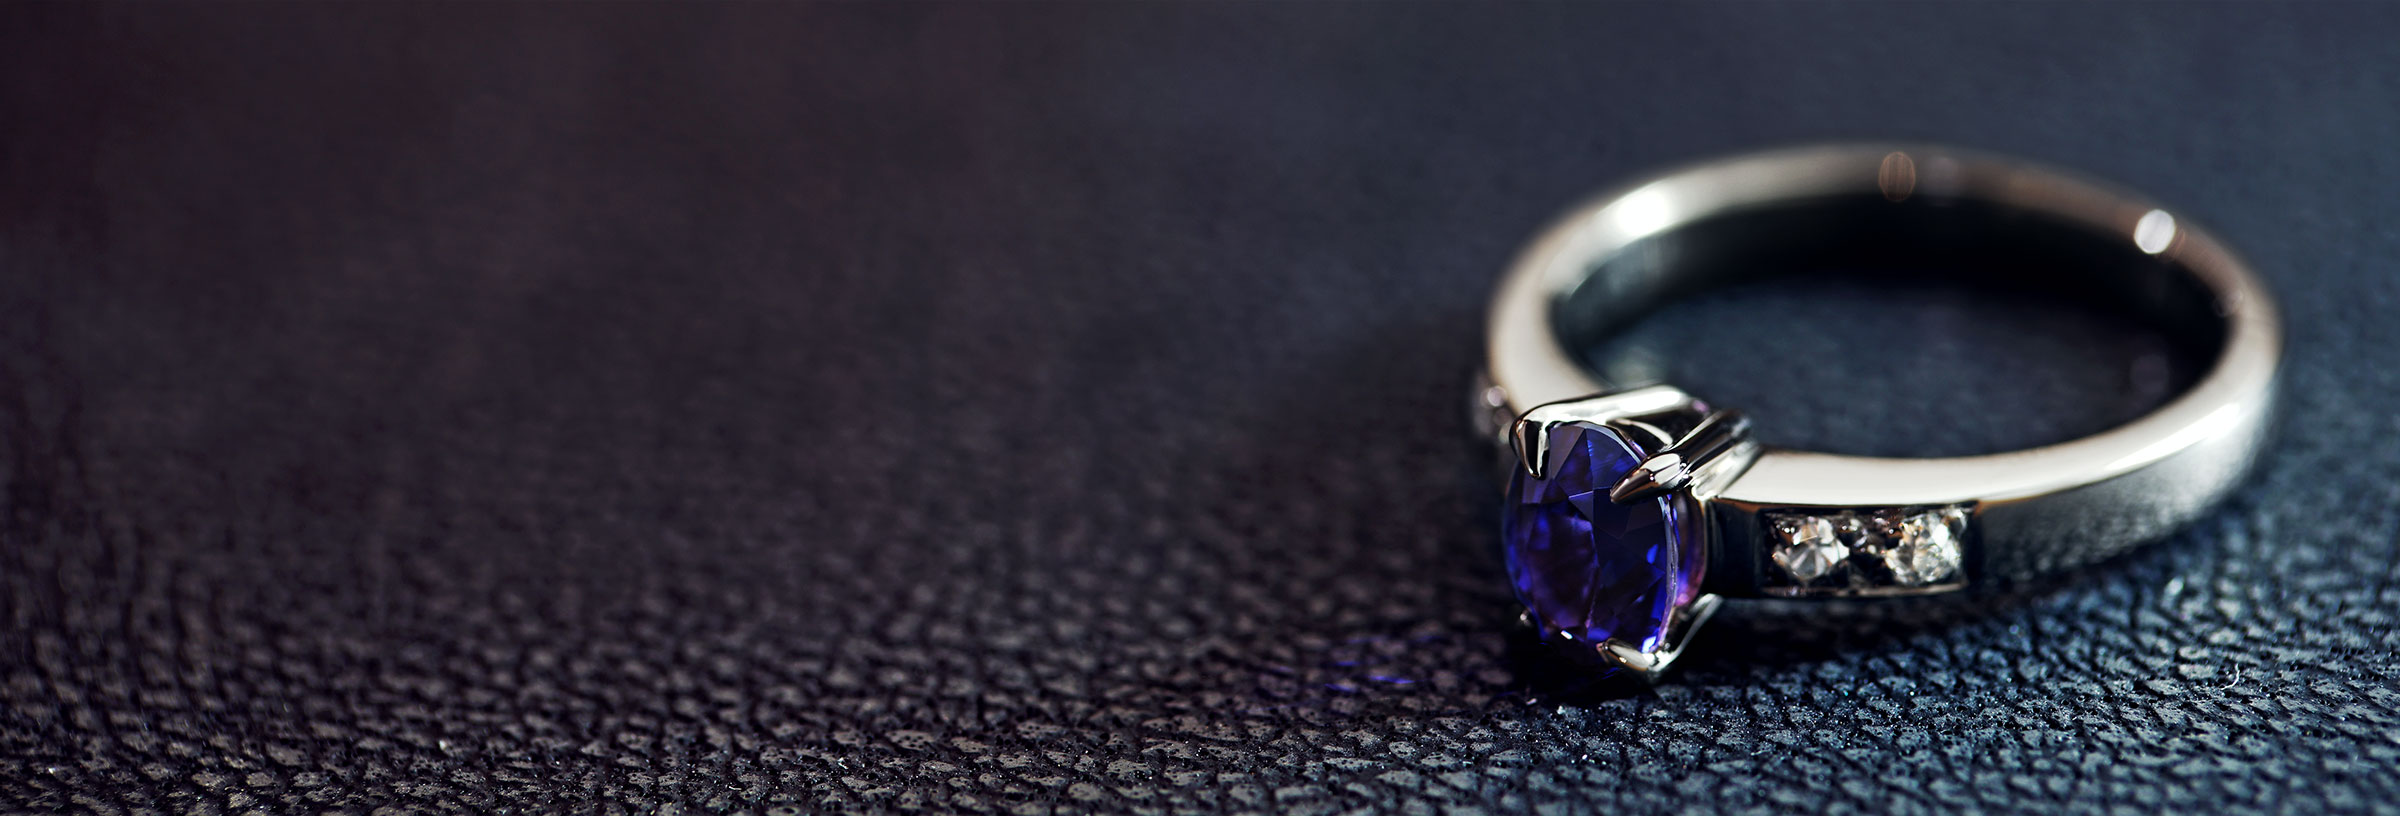 1.09ct colour change sapphire, recycled diamond and 18ct white gold engagement ring